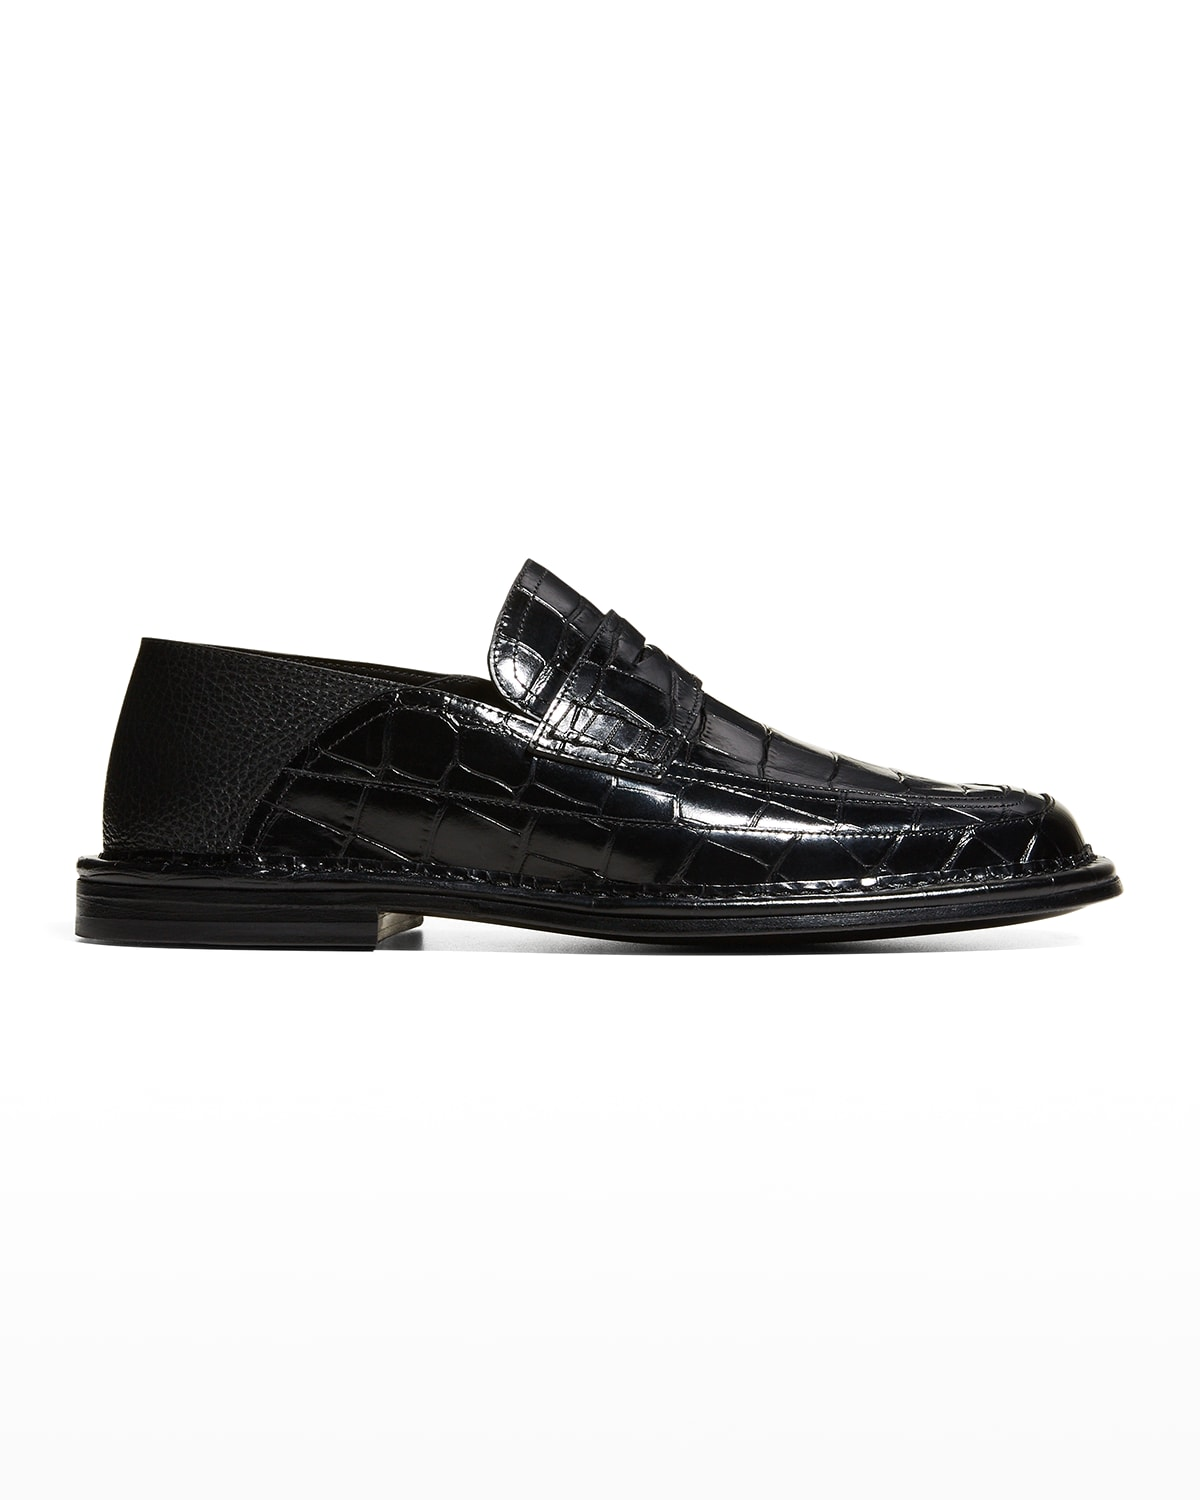 Men's Croc-Embossed Fold-Down Penny Loafers